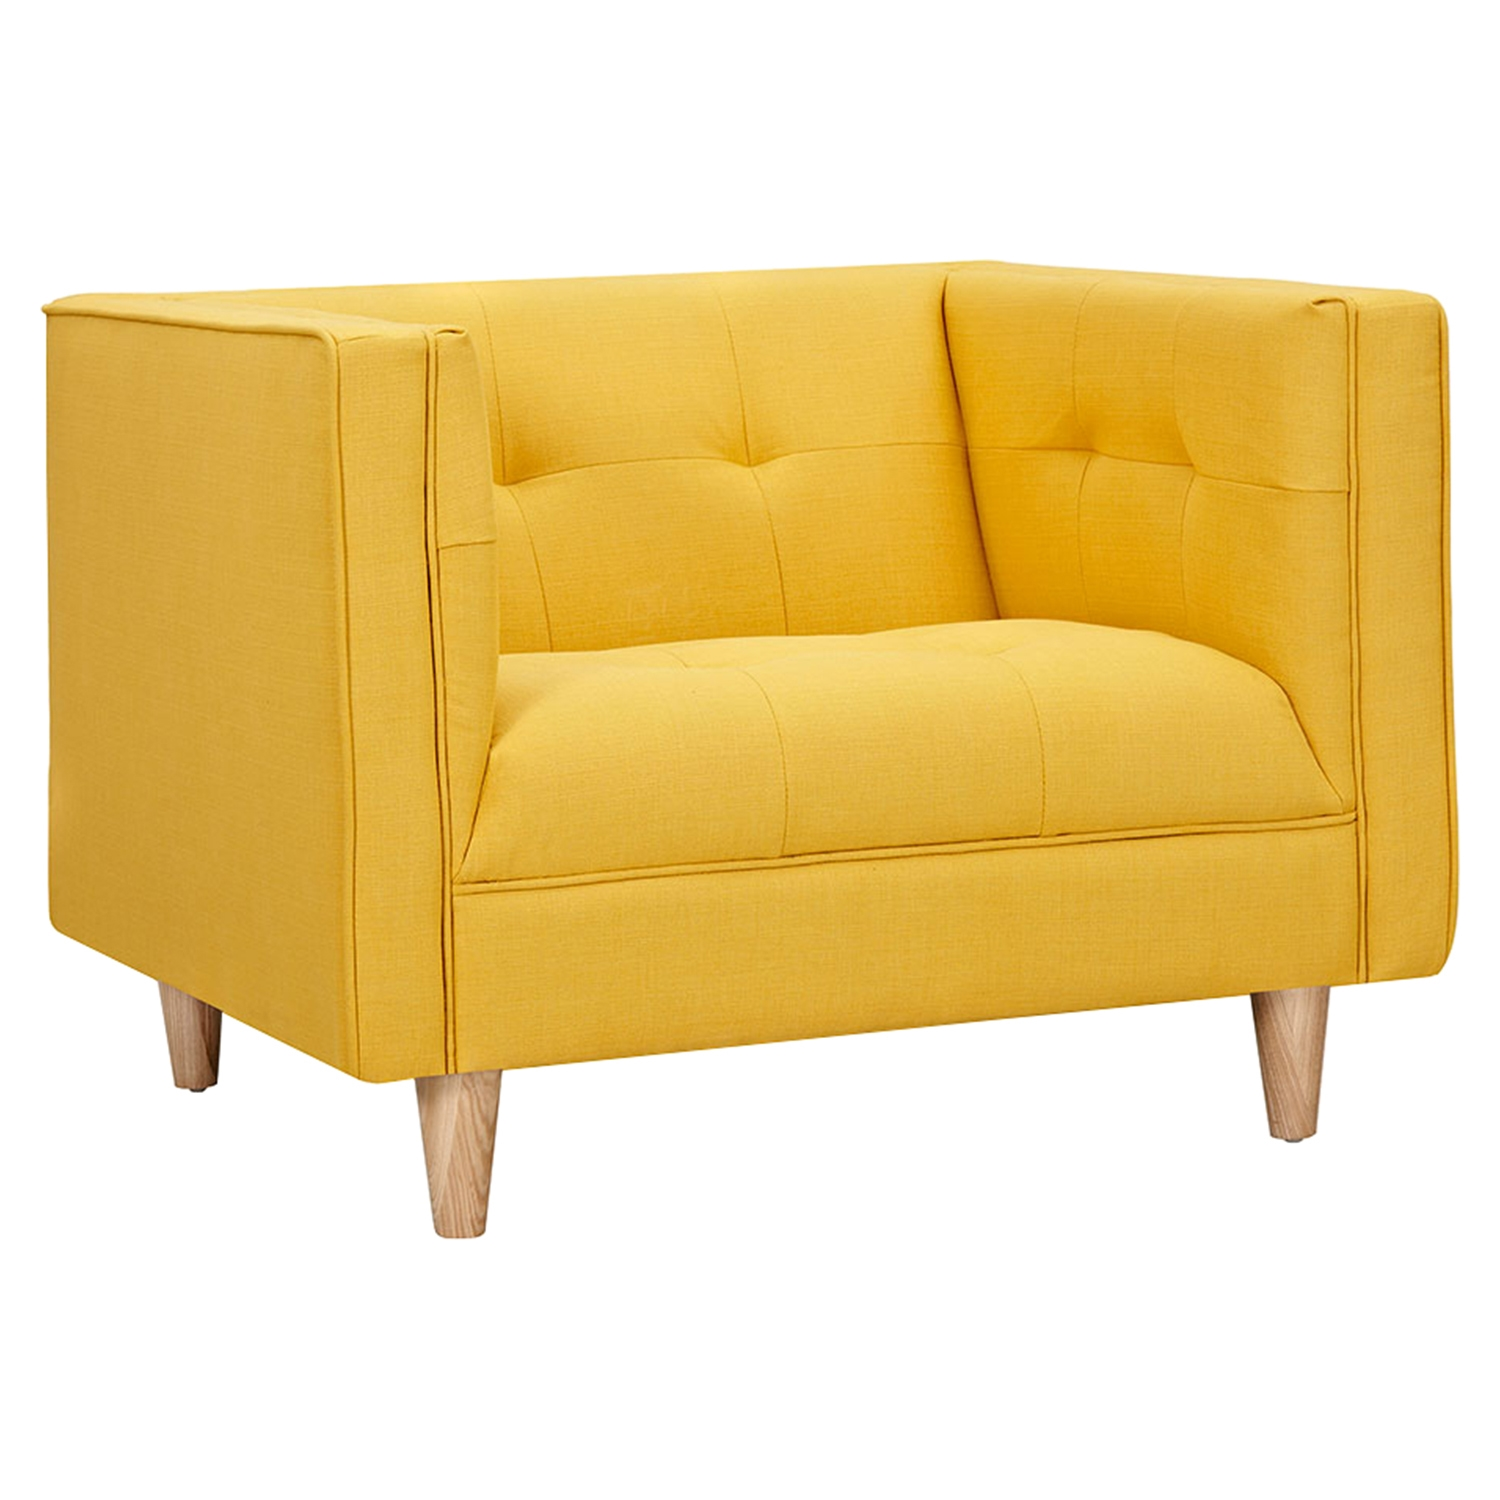 Kaja Armchair - Papaya Yellow, Tufted